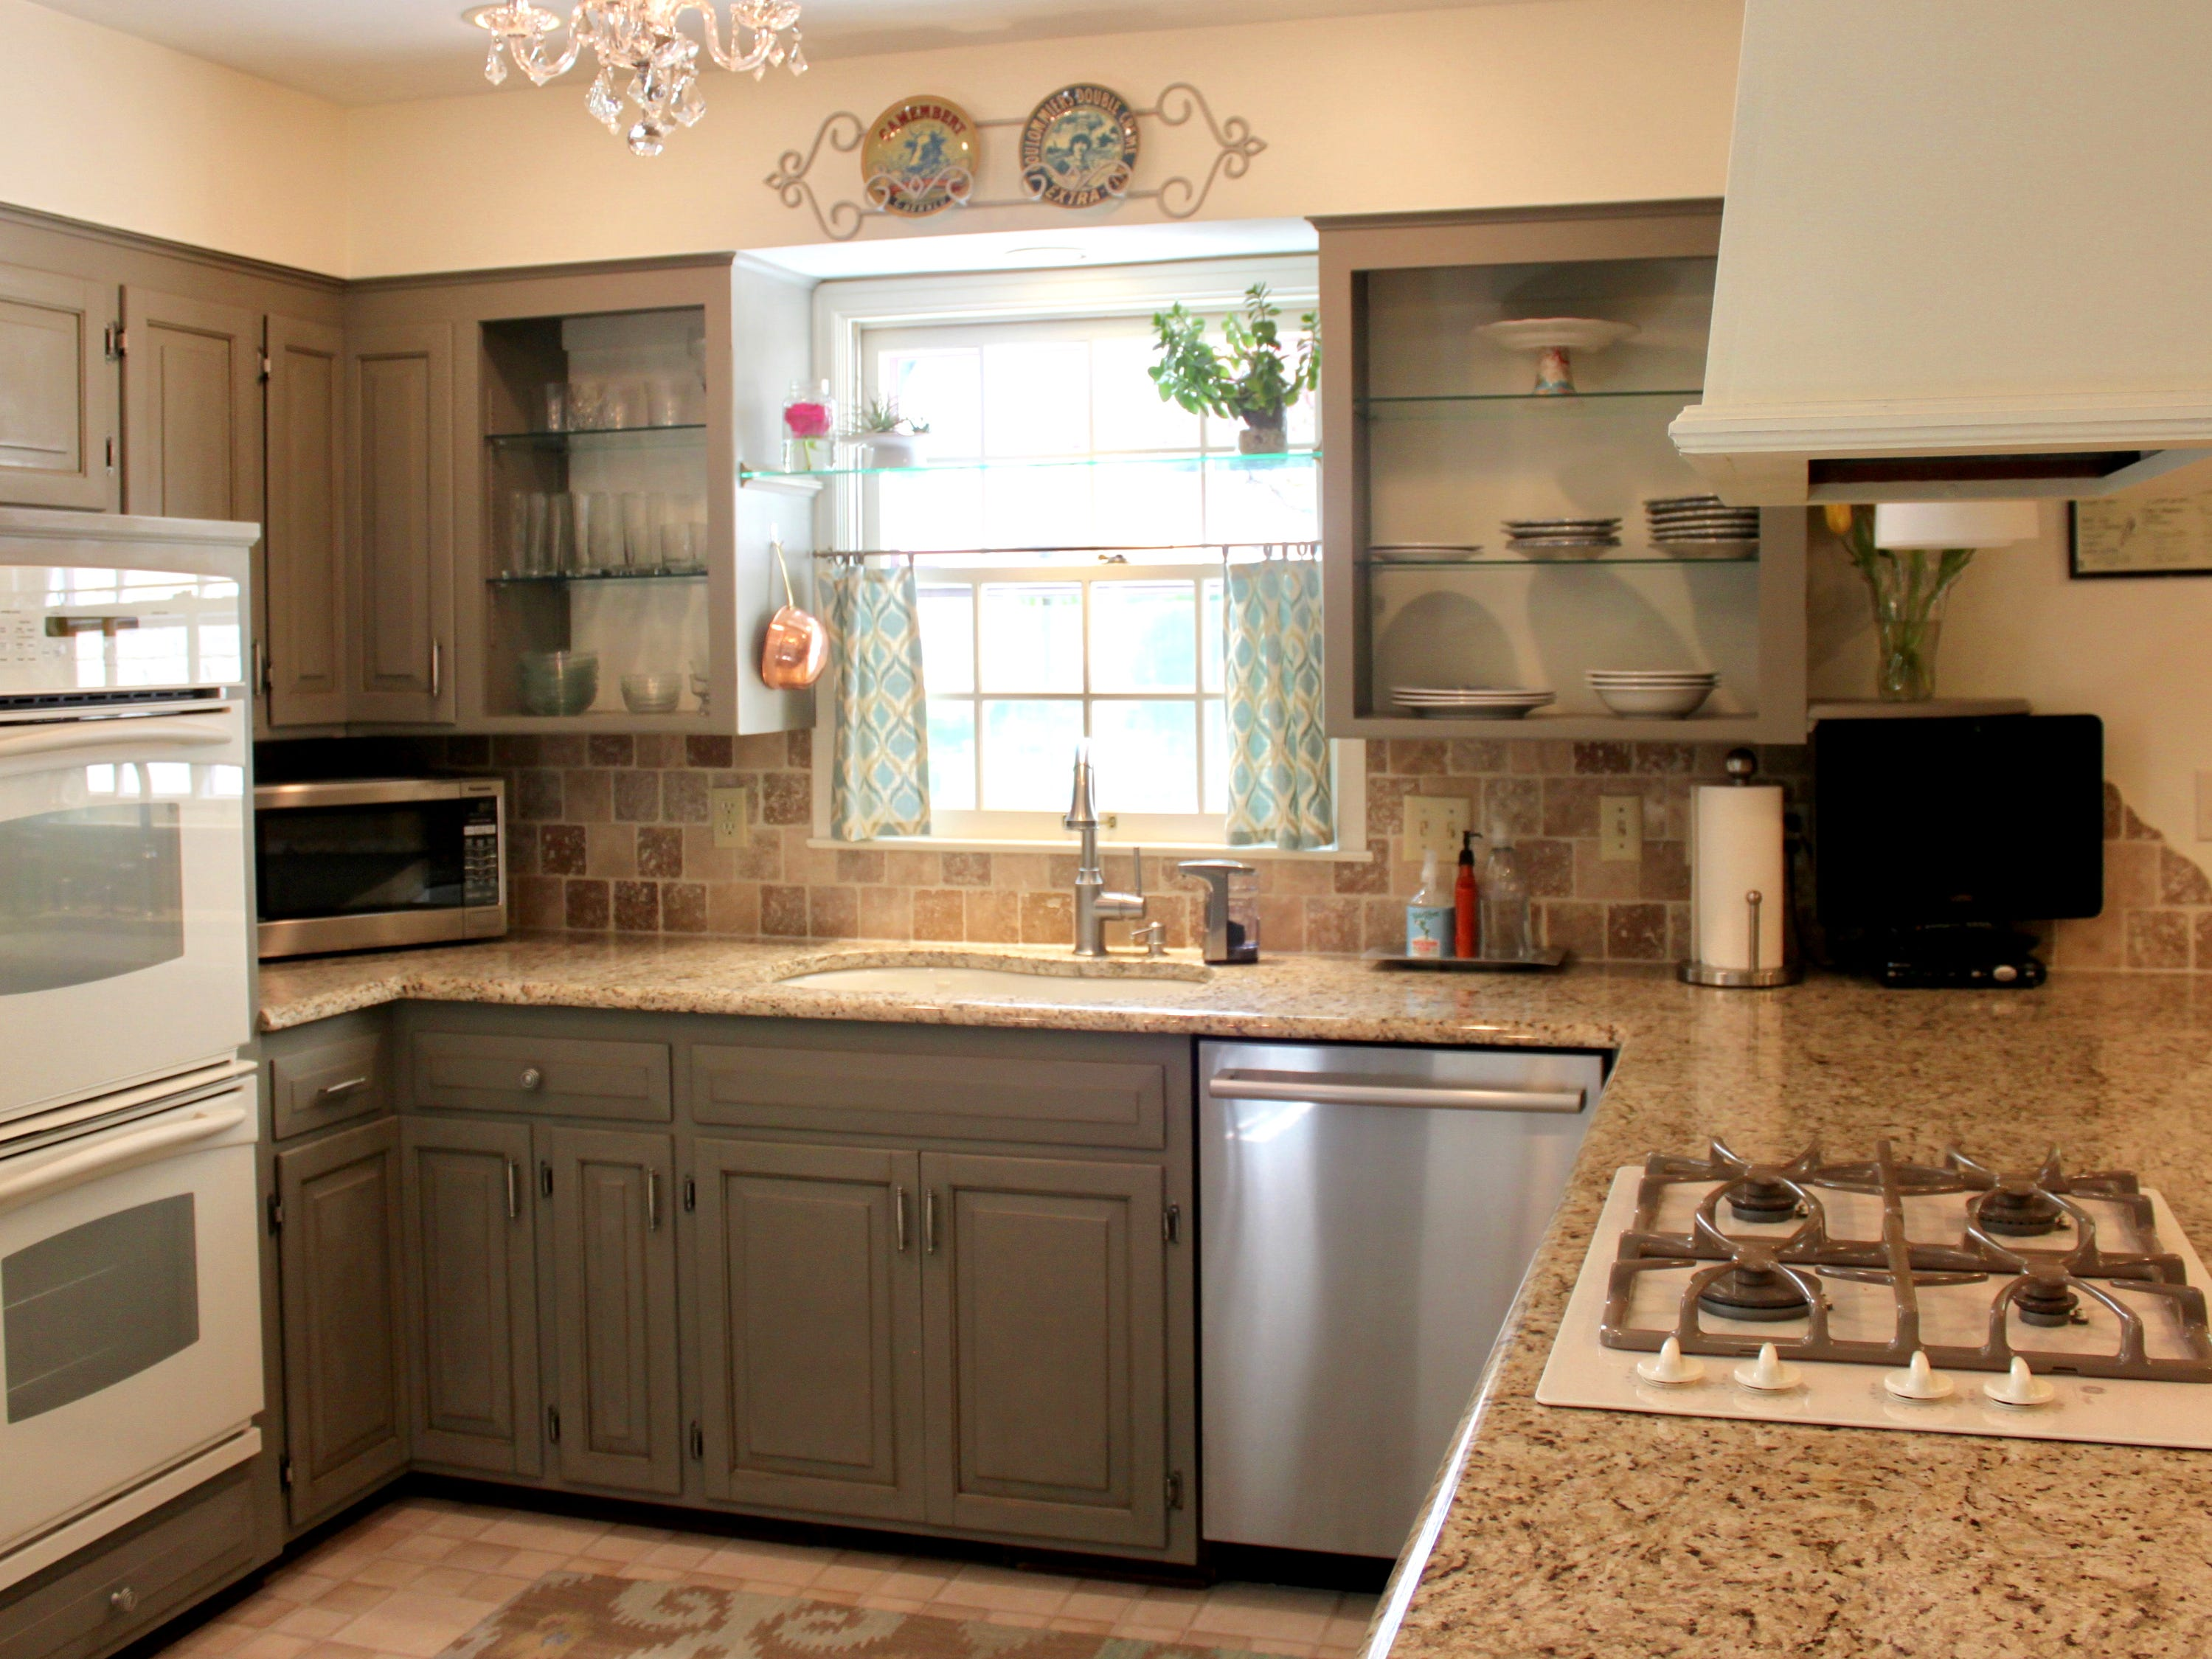 Sarah Timmer updated the kitchen of her previous home by taking the doors off some of the cabinets and exposing the shelves. Painting the  cabinets, changing the lighting and adding new hardware also provided a new look.